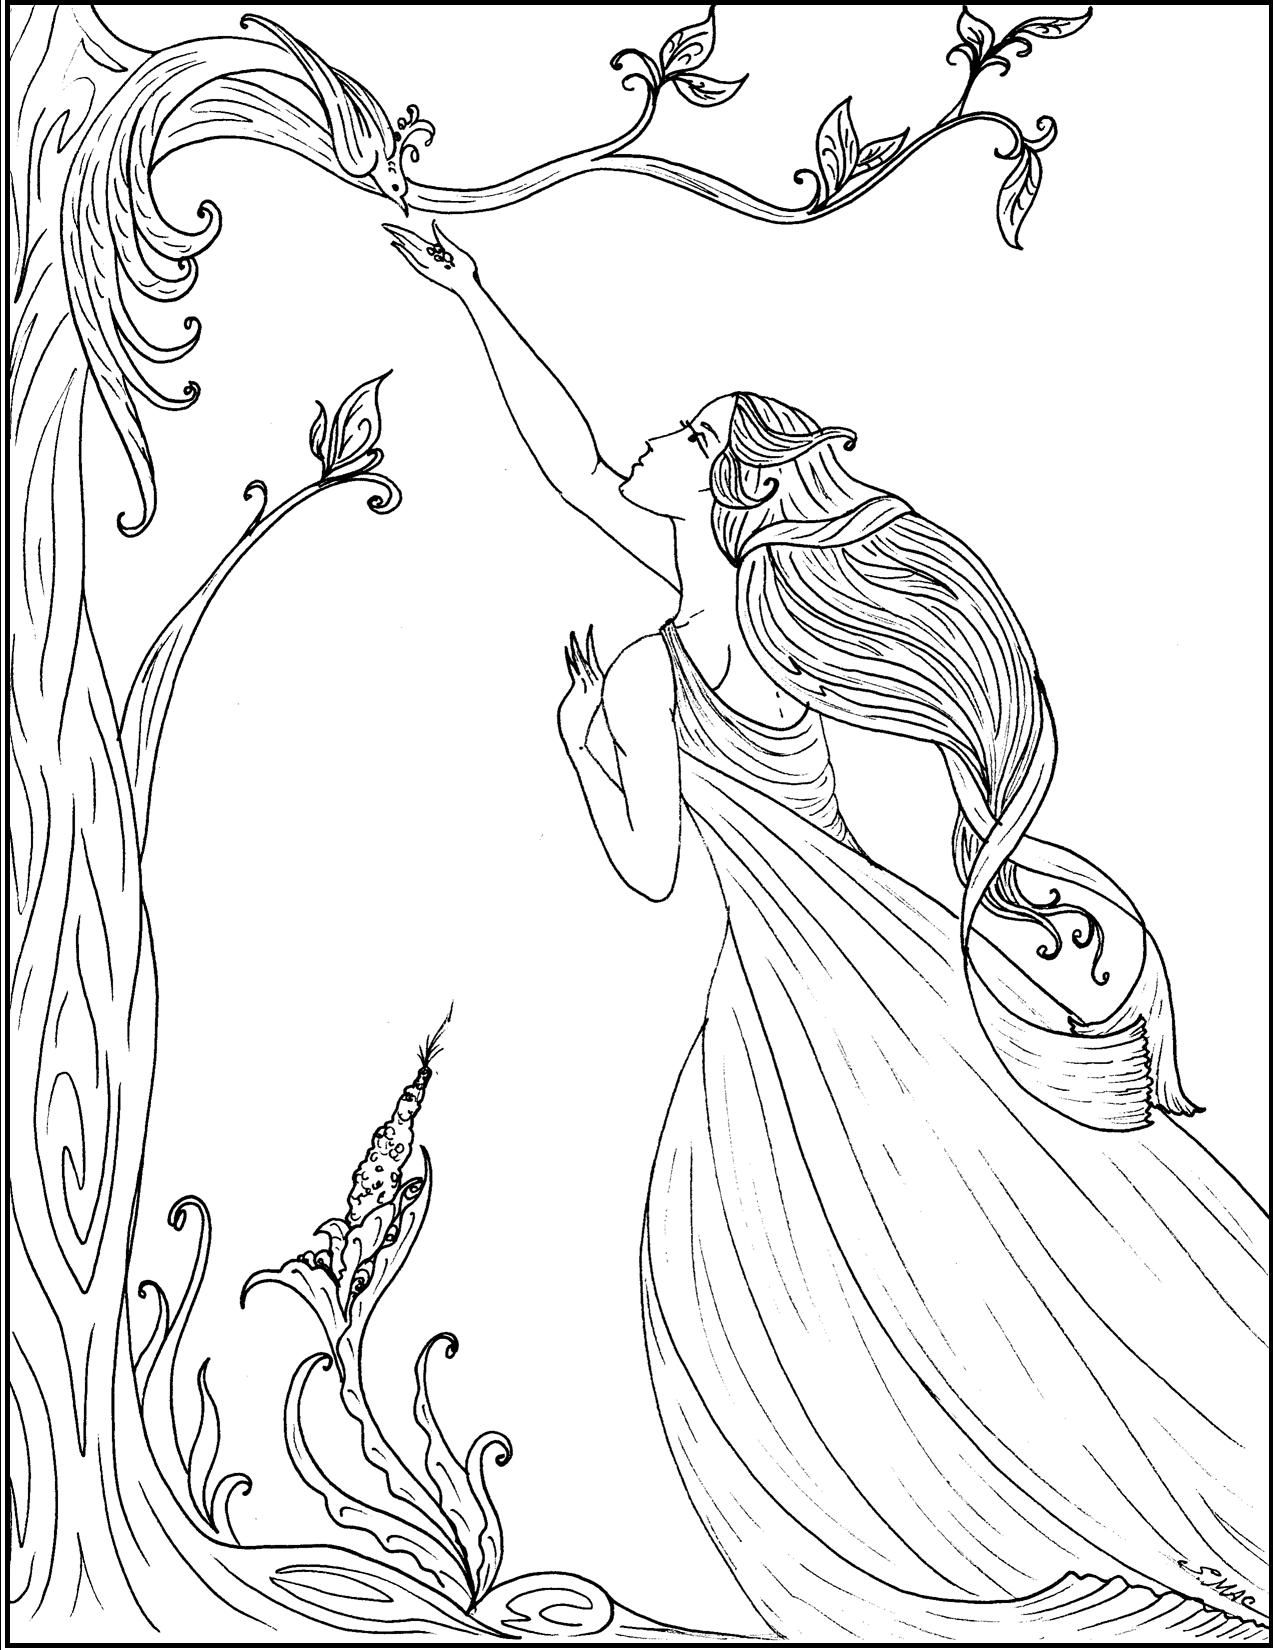 Coloring Pages for children is a wonderful activity that encourages ...